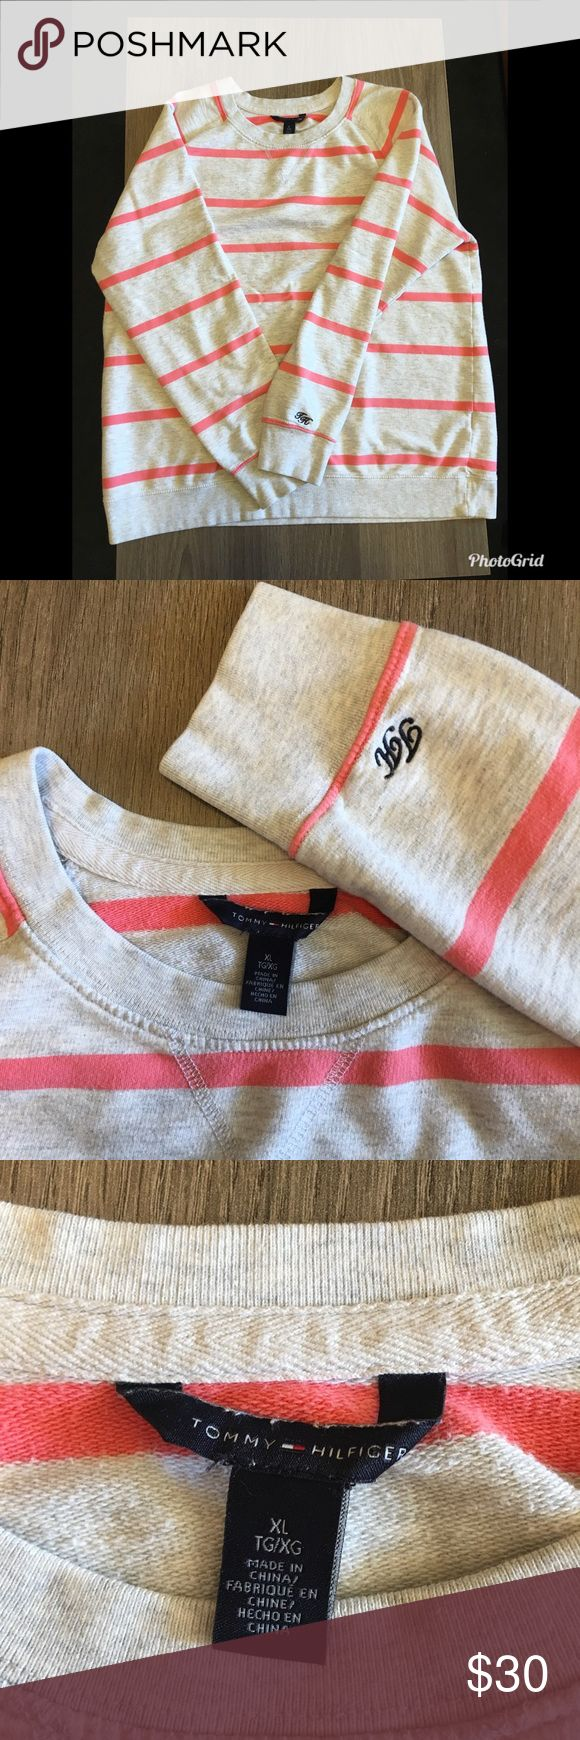 Tommy Hilfiger Crew Neck Sweatshirt Excellent condition grey and coral pink crew neck with embroidered TH on the sleeve! Perfect for winter into spring!  🚫 No Trades 📦 Fast Shipper! Tommy Hilfiger Sweaters Crew & Scoop Necks